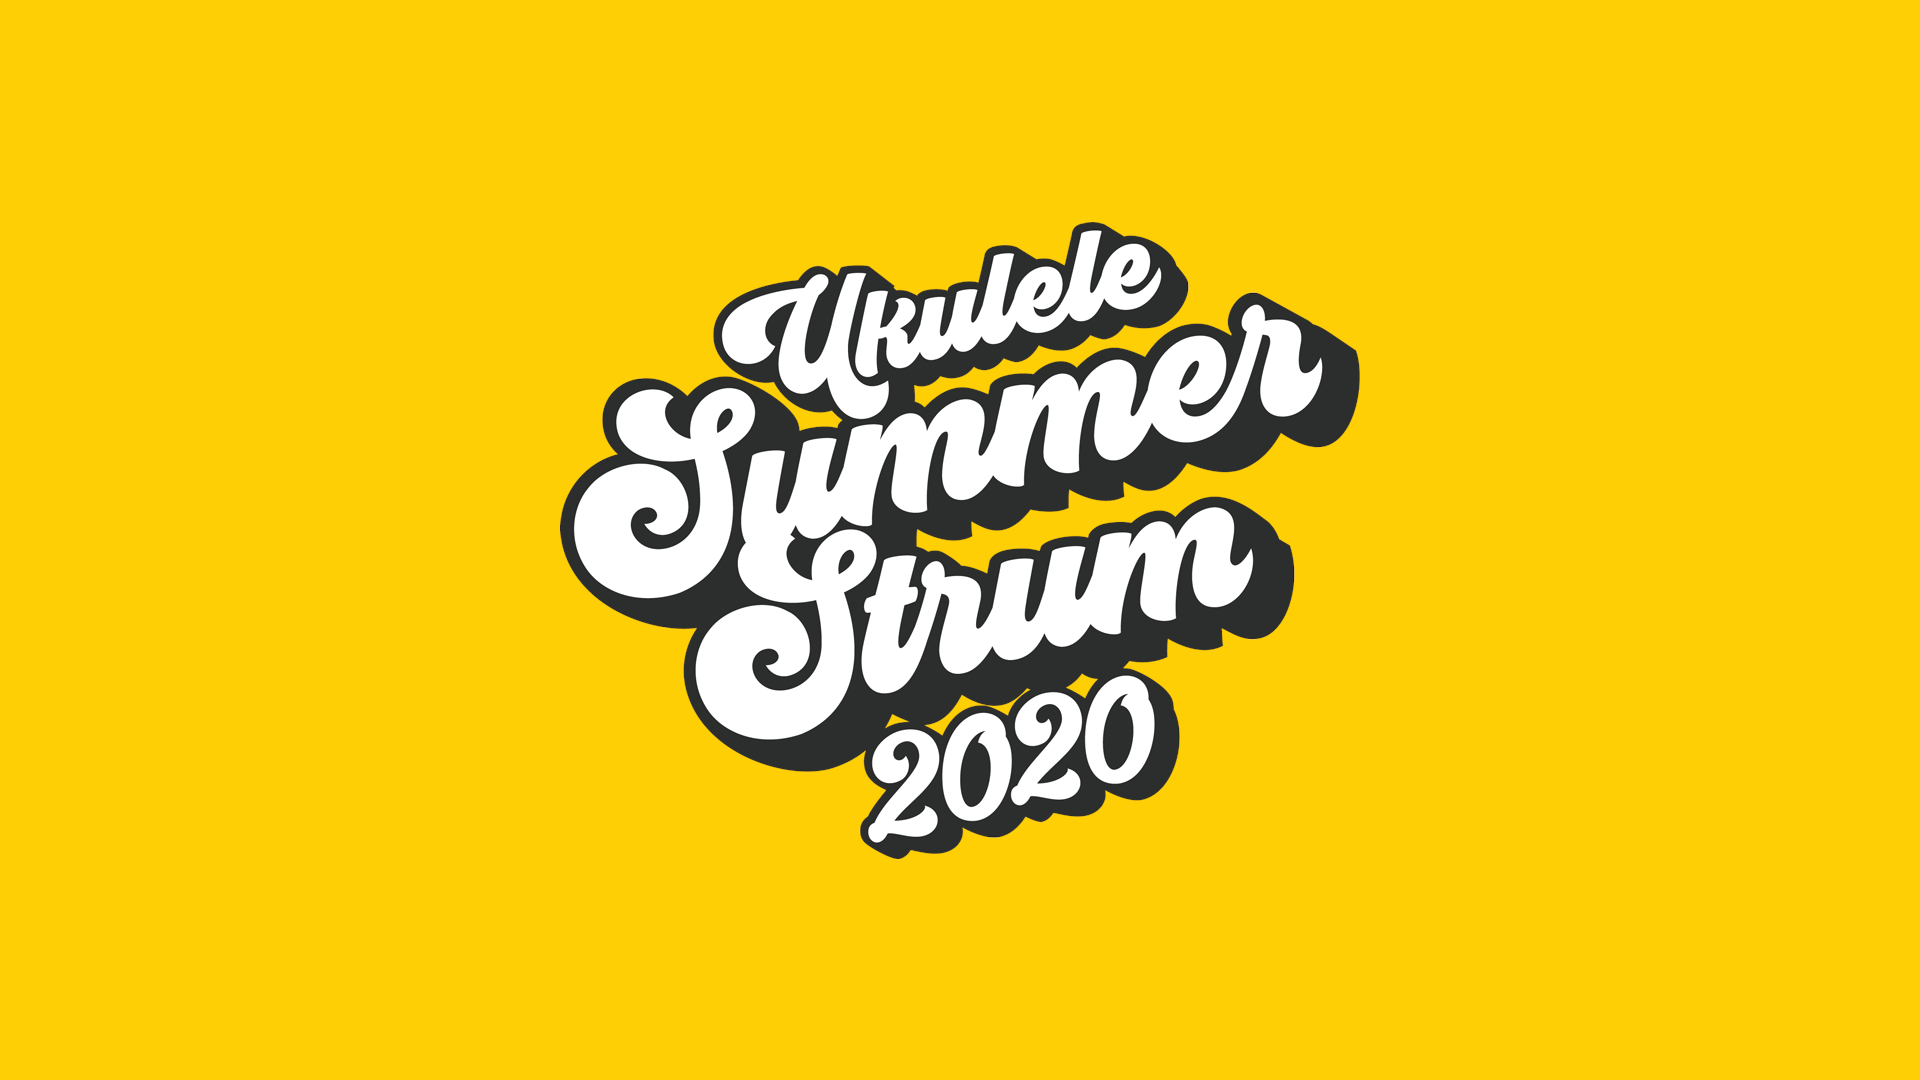 Workshop: Summer Strum Hoylake